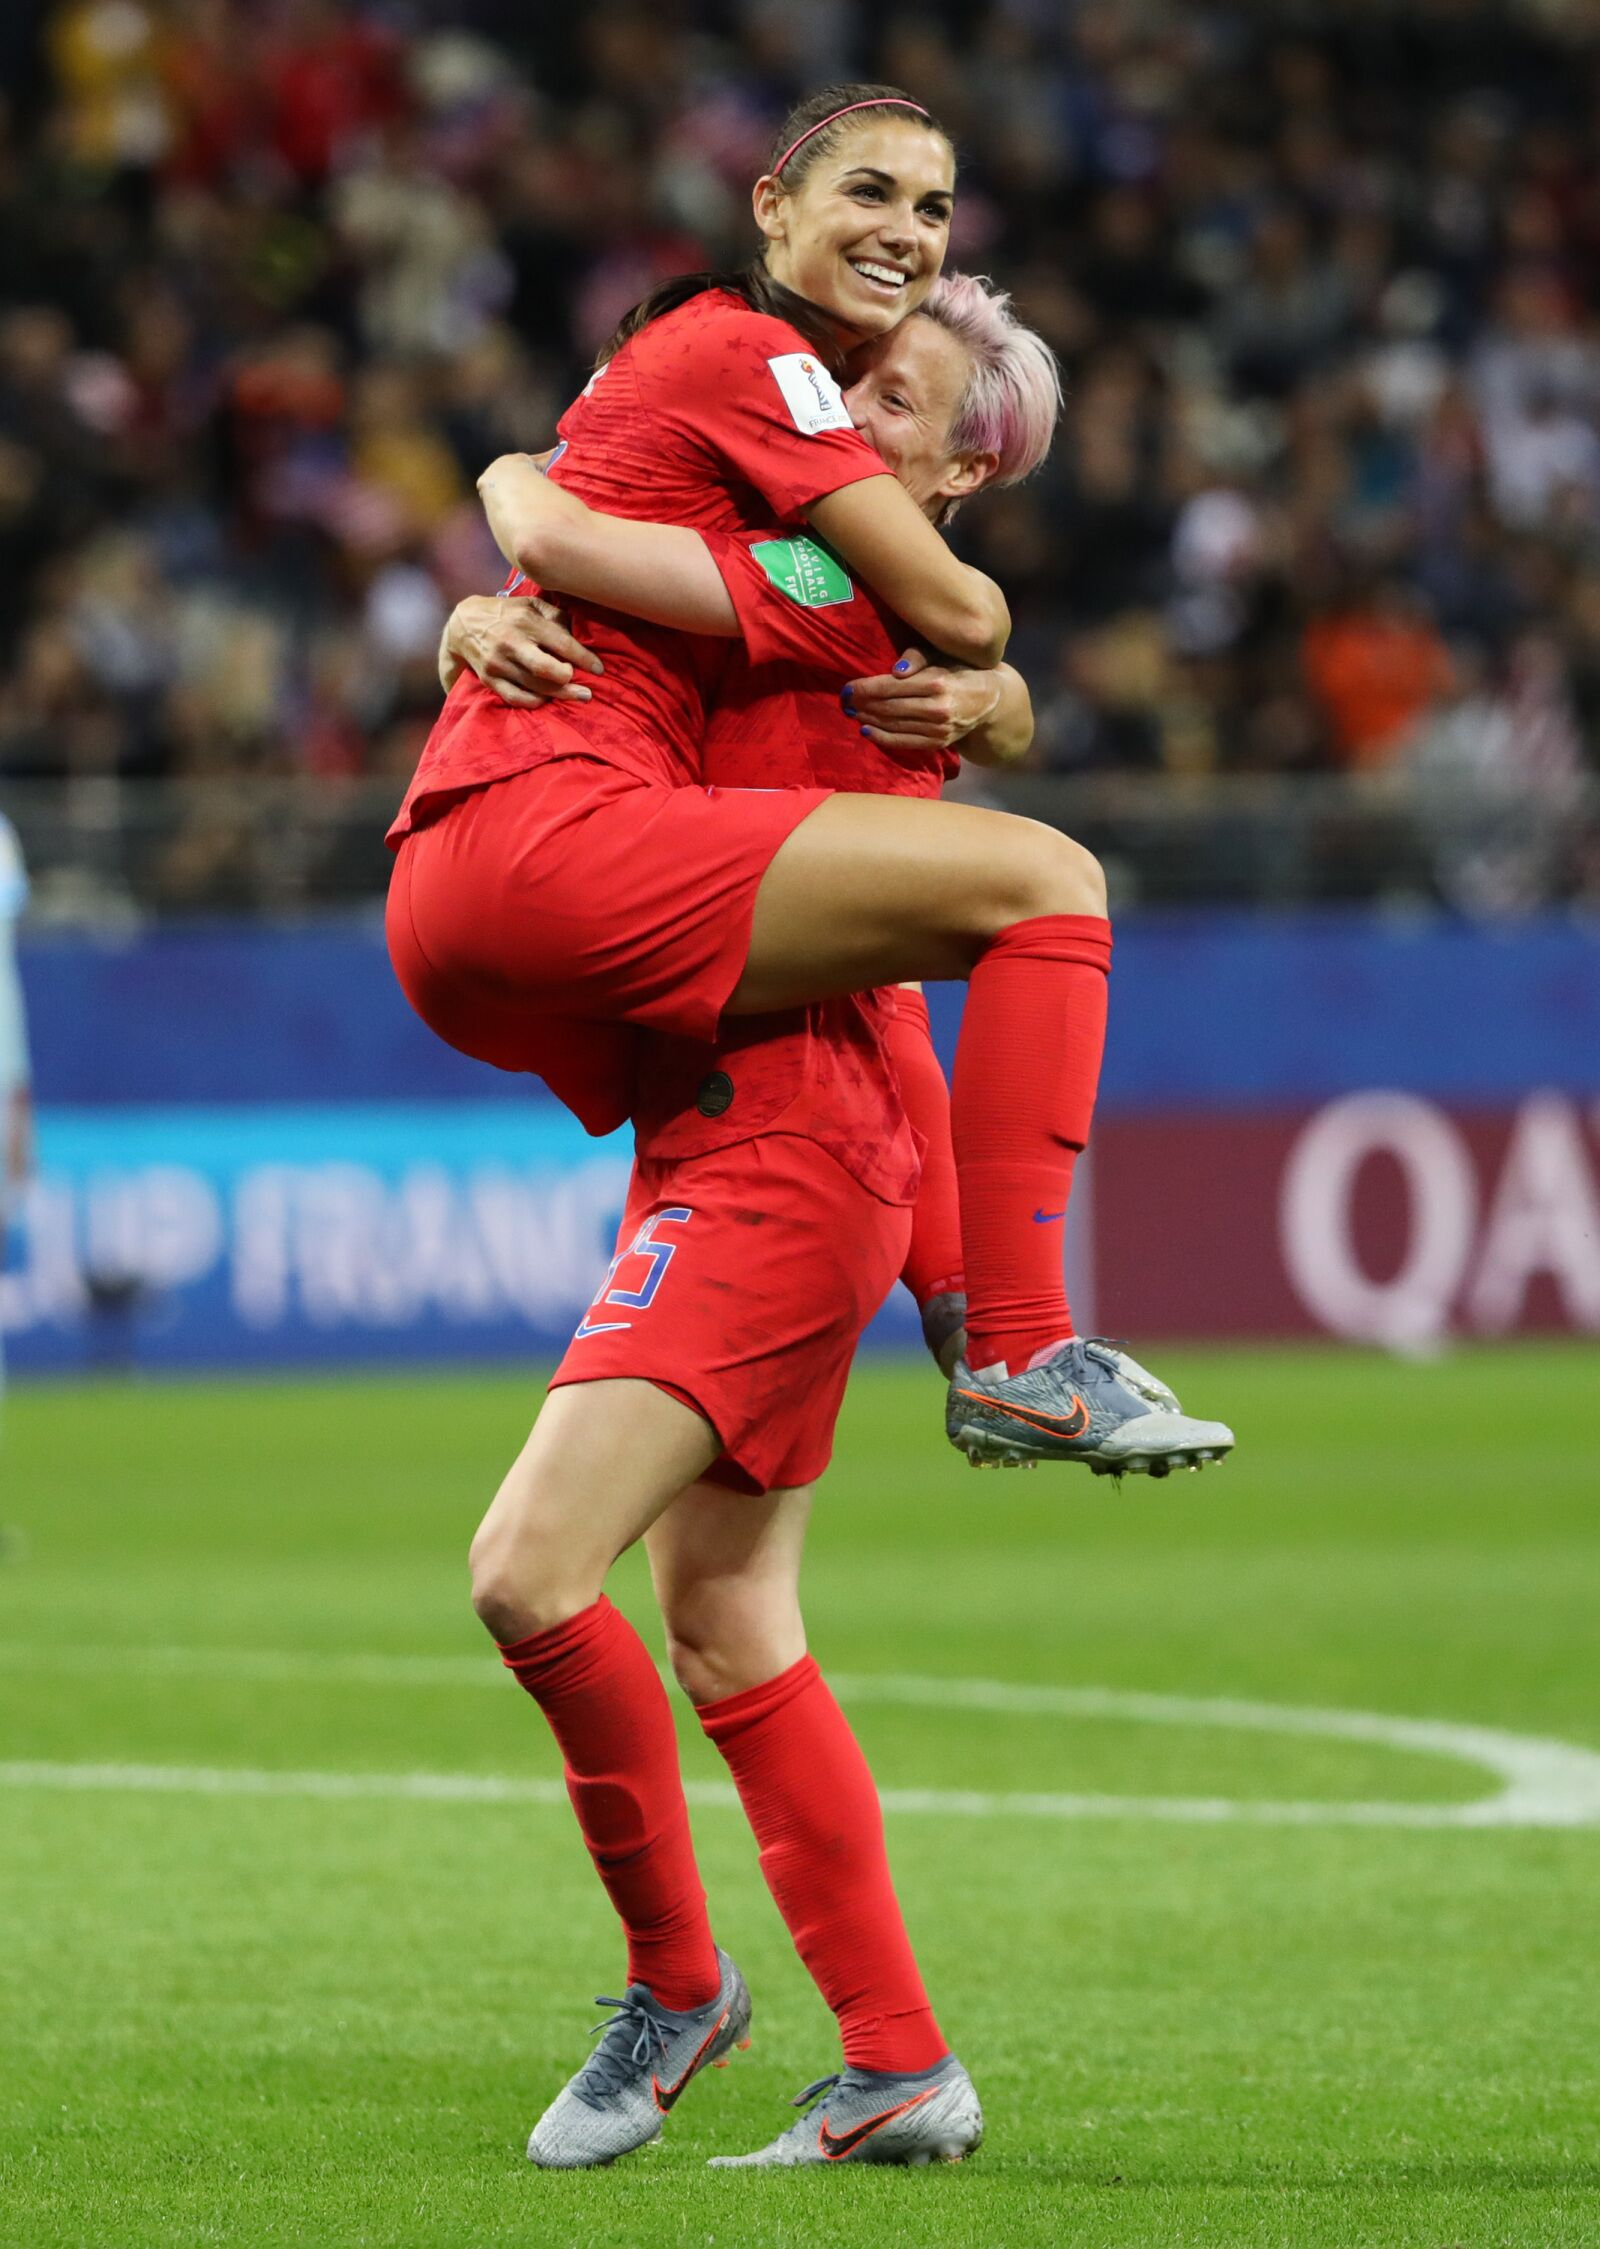 Twitter reacts to the USWNT's record-scoring win over Thailand